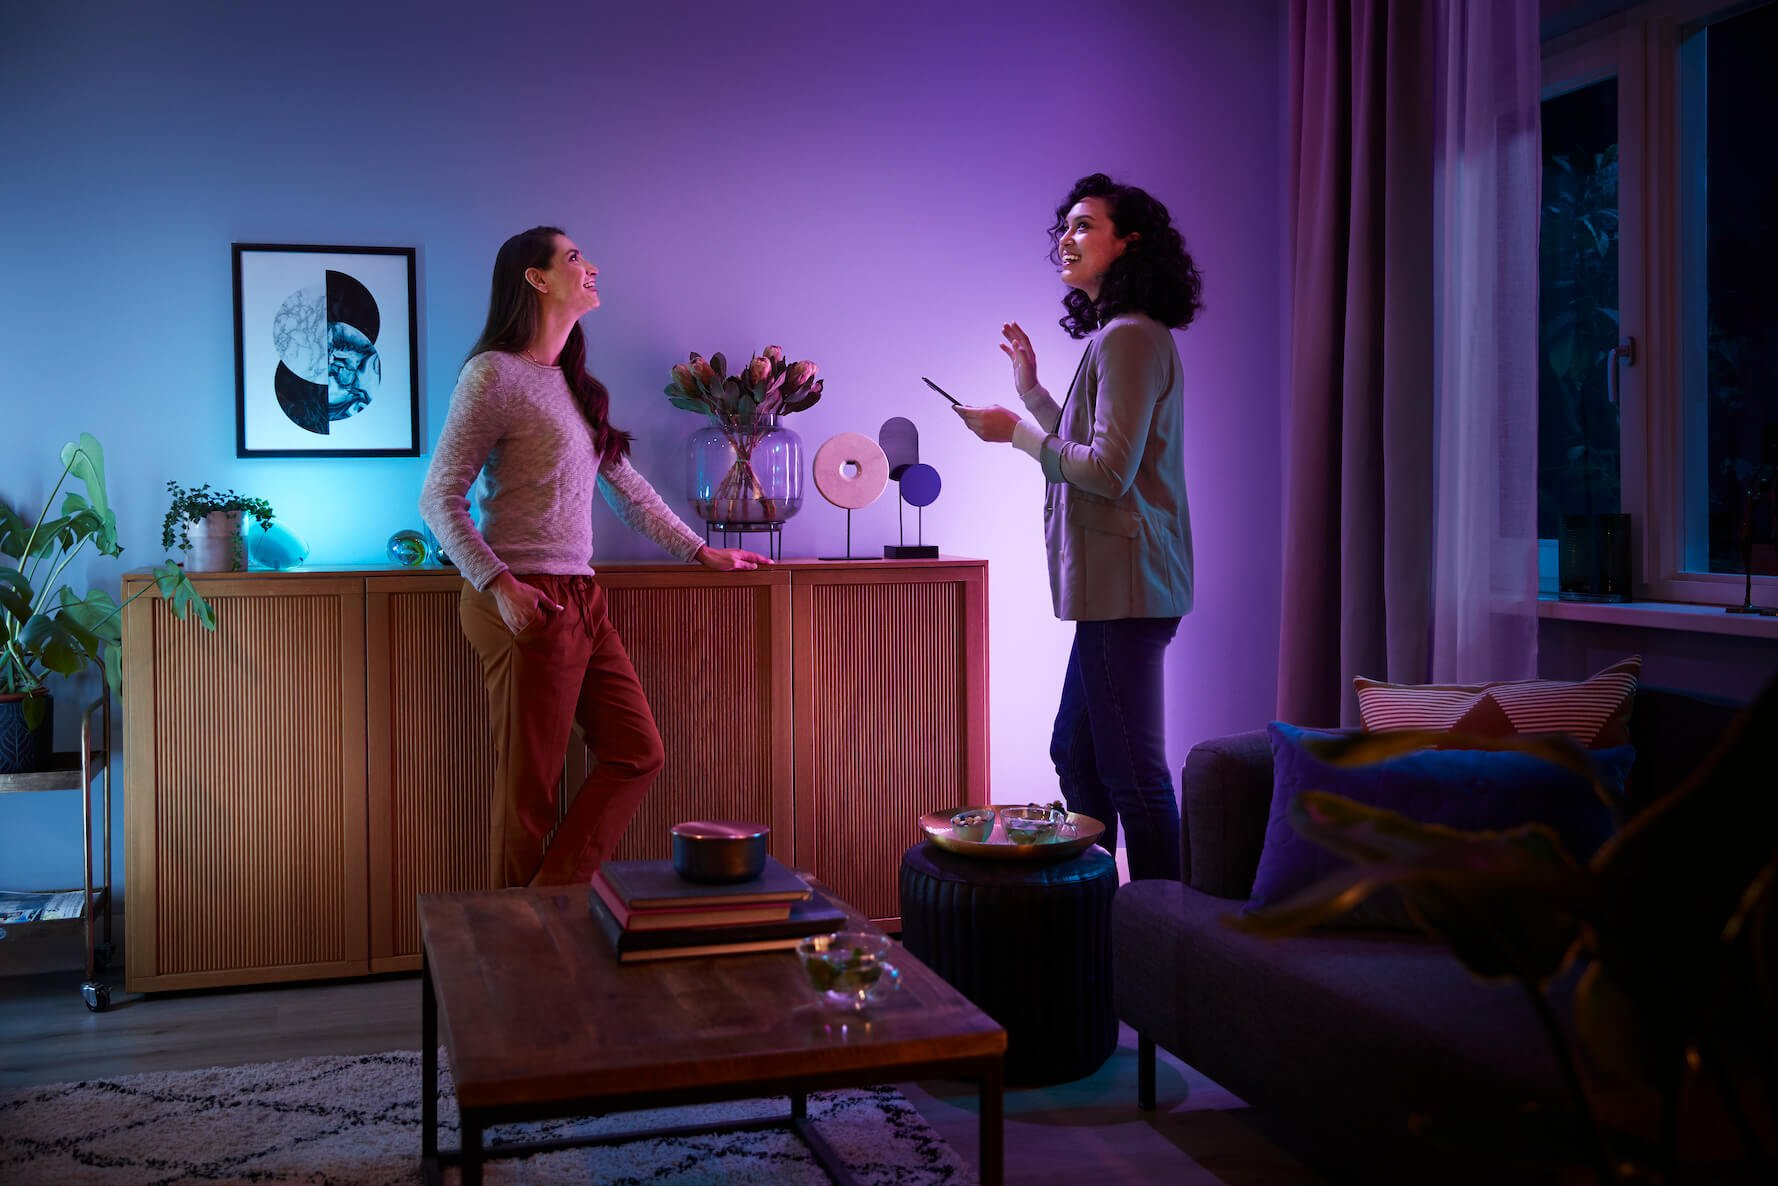 Enjoy Smart Lighting from your phone